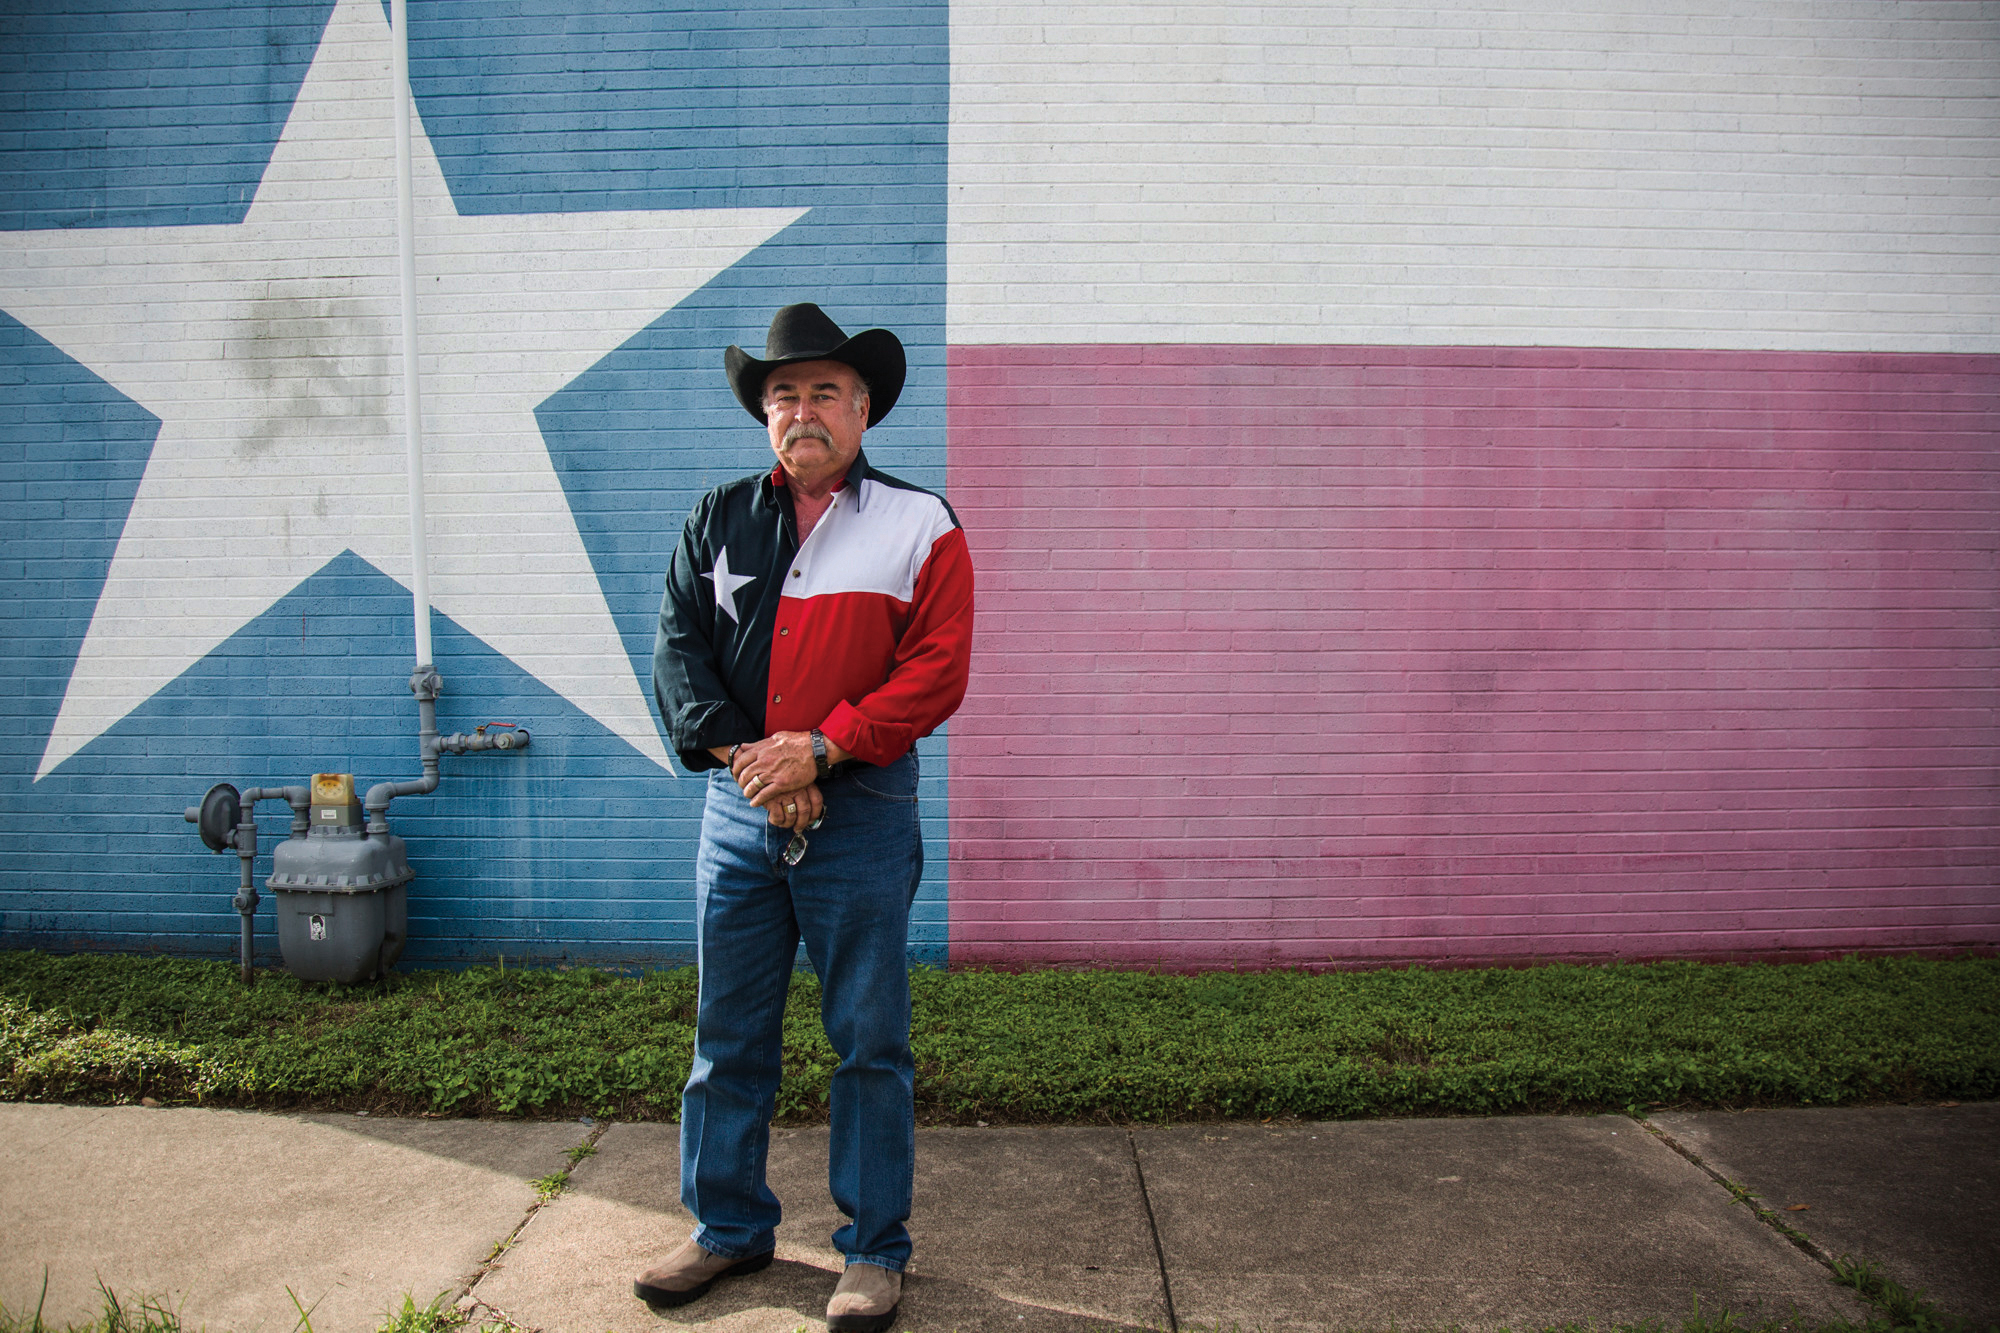 Thomas Smith, 66, stands in front of a Texas flag wall painting with a matching Texas flag shirt before the start of the Veterans Day parade in Victoria, Texas on Nov. 11, 2017.